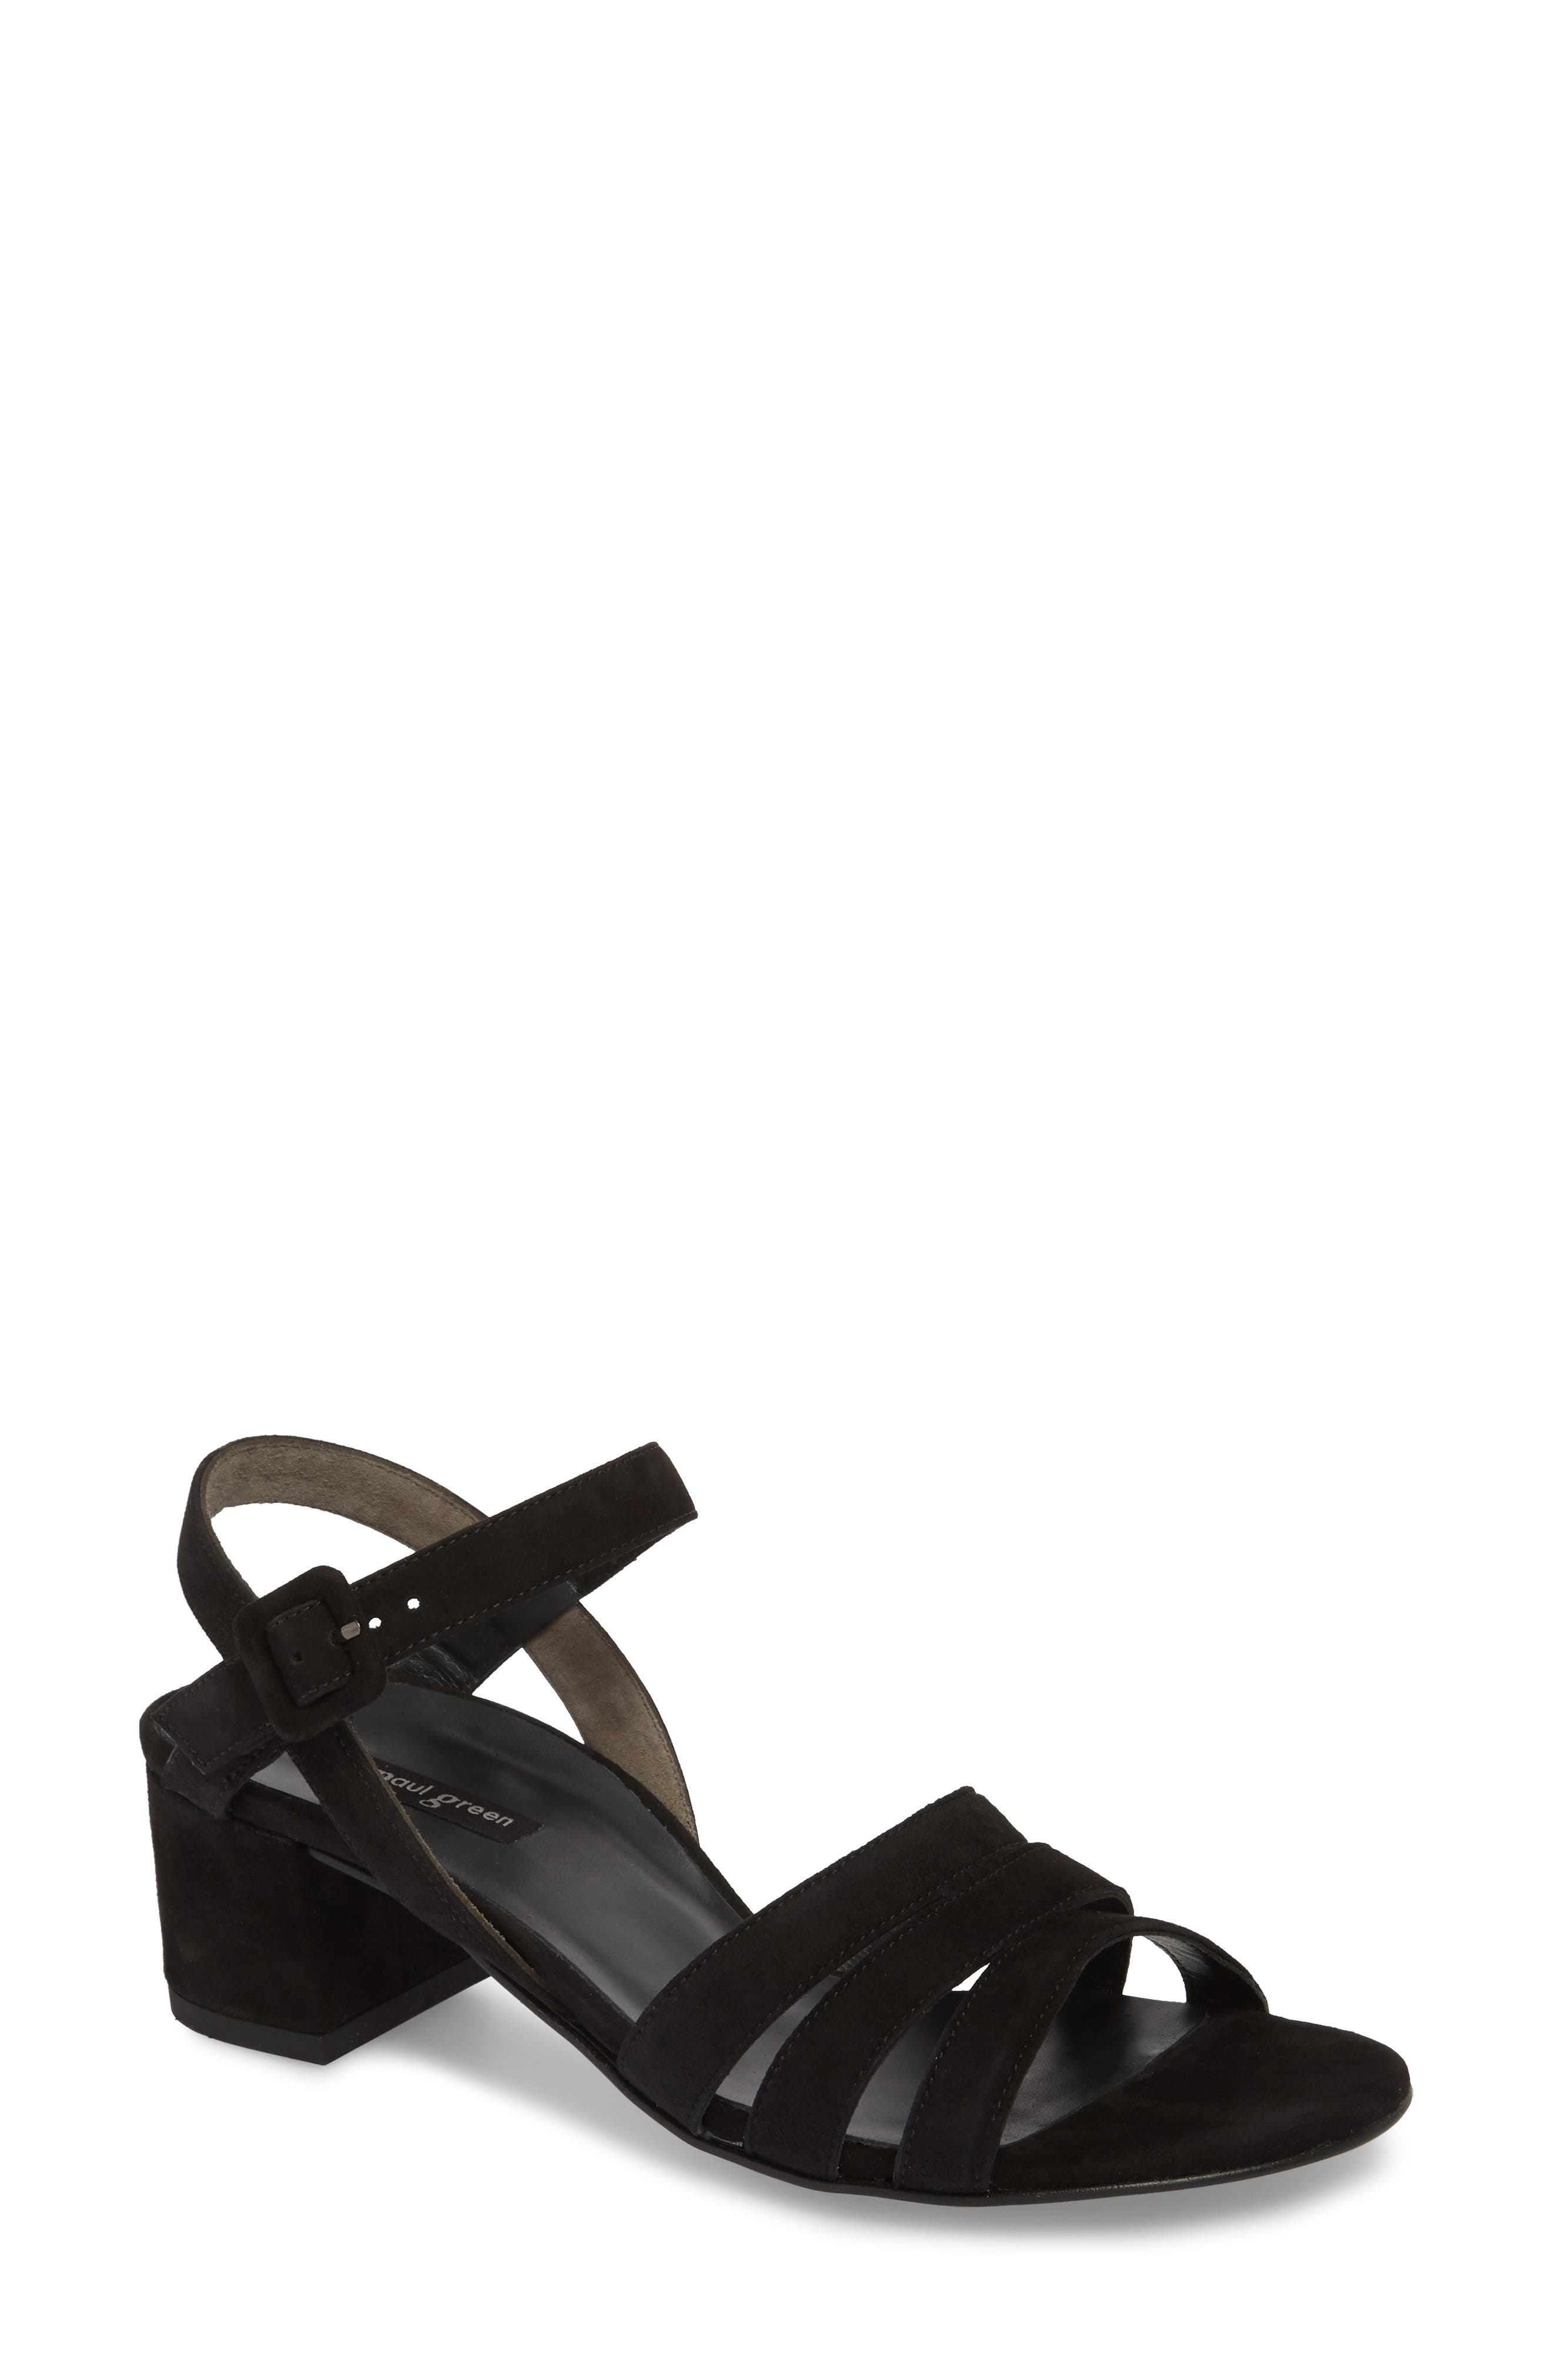 Rosemary Sandal,                         Main,                         color, Black Suede